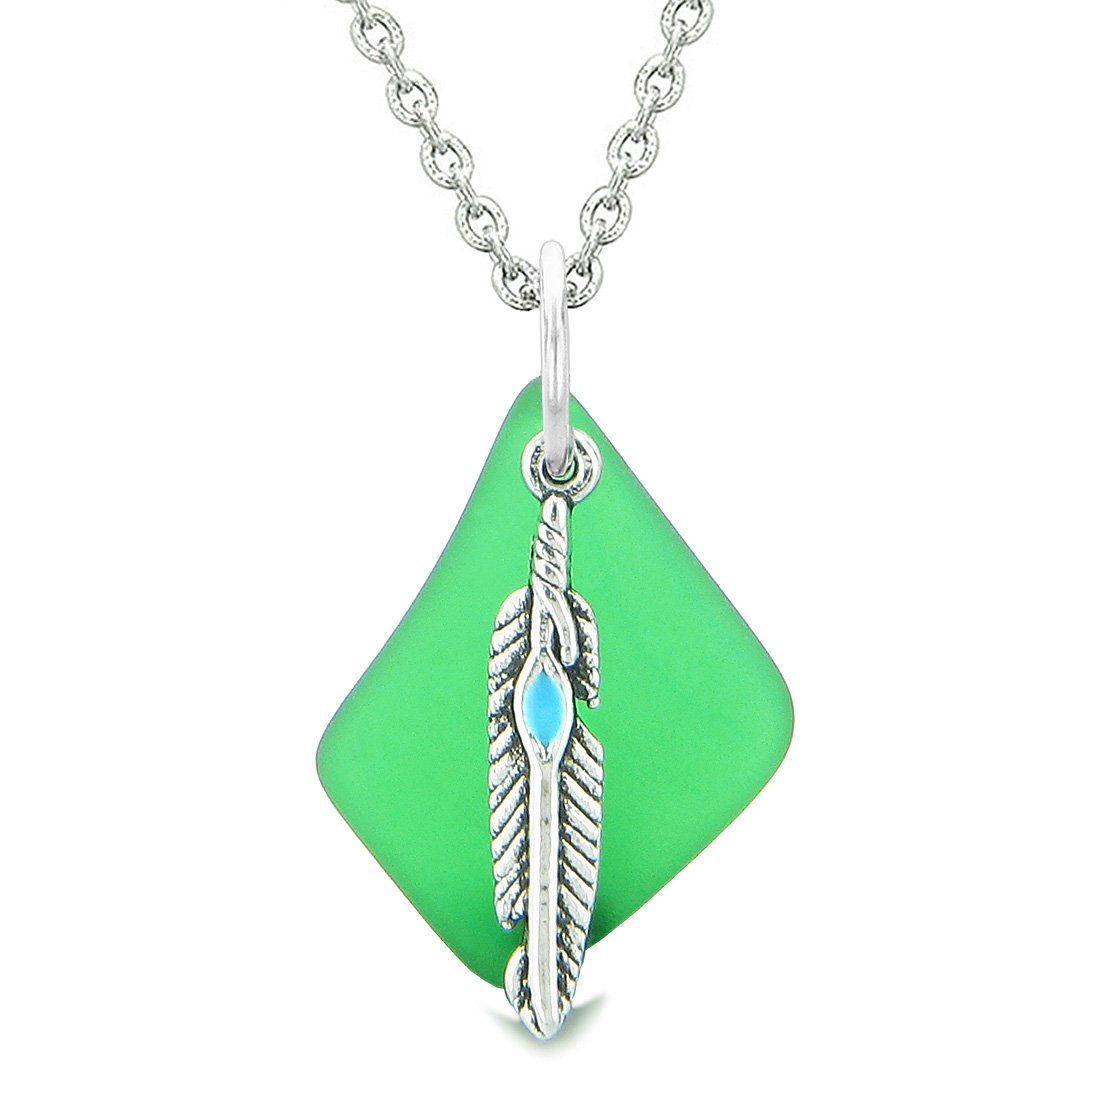 Handcrafted Free Form Sea Glass Ocean Green Amulet Arrowhead Shaped Feather Magic Powers 22 Inch Necklace